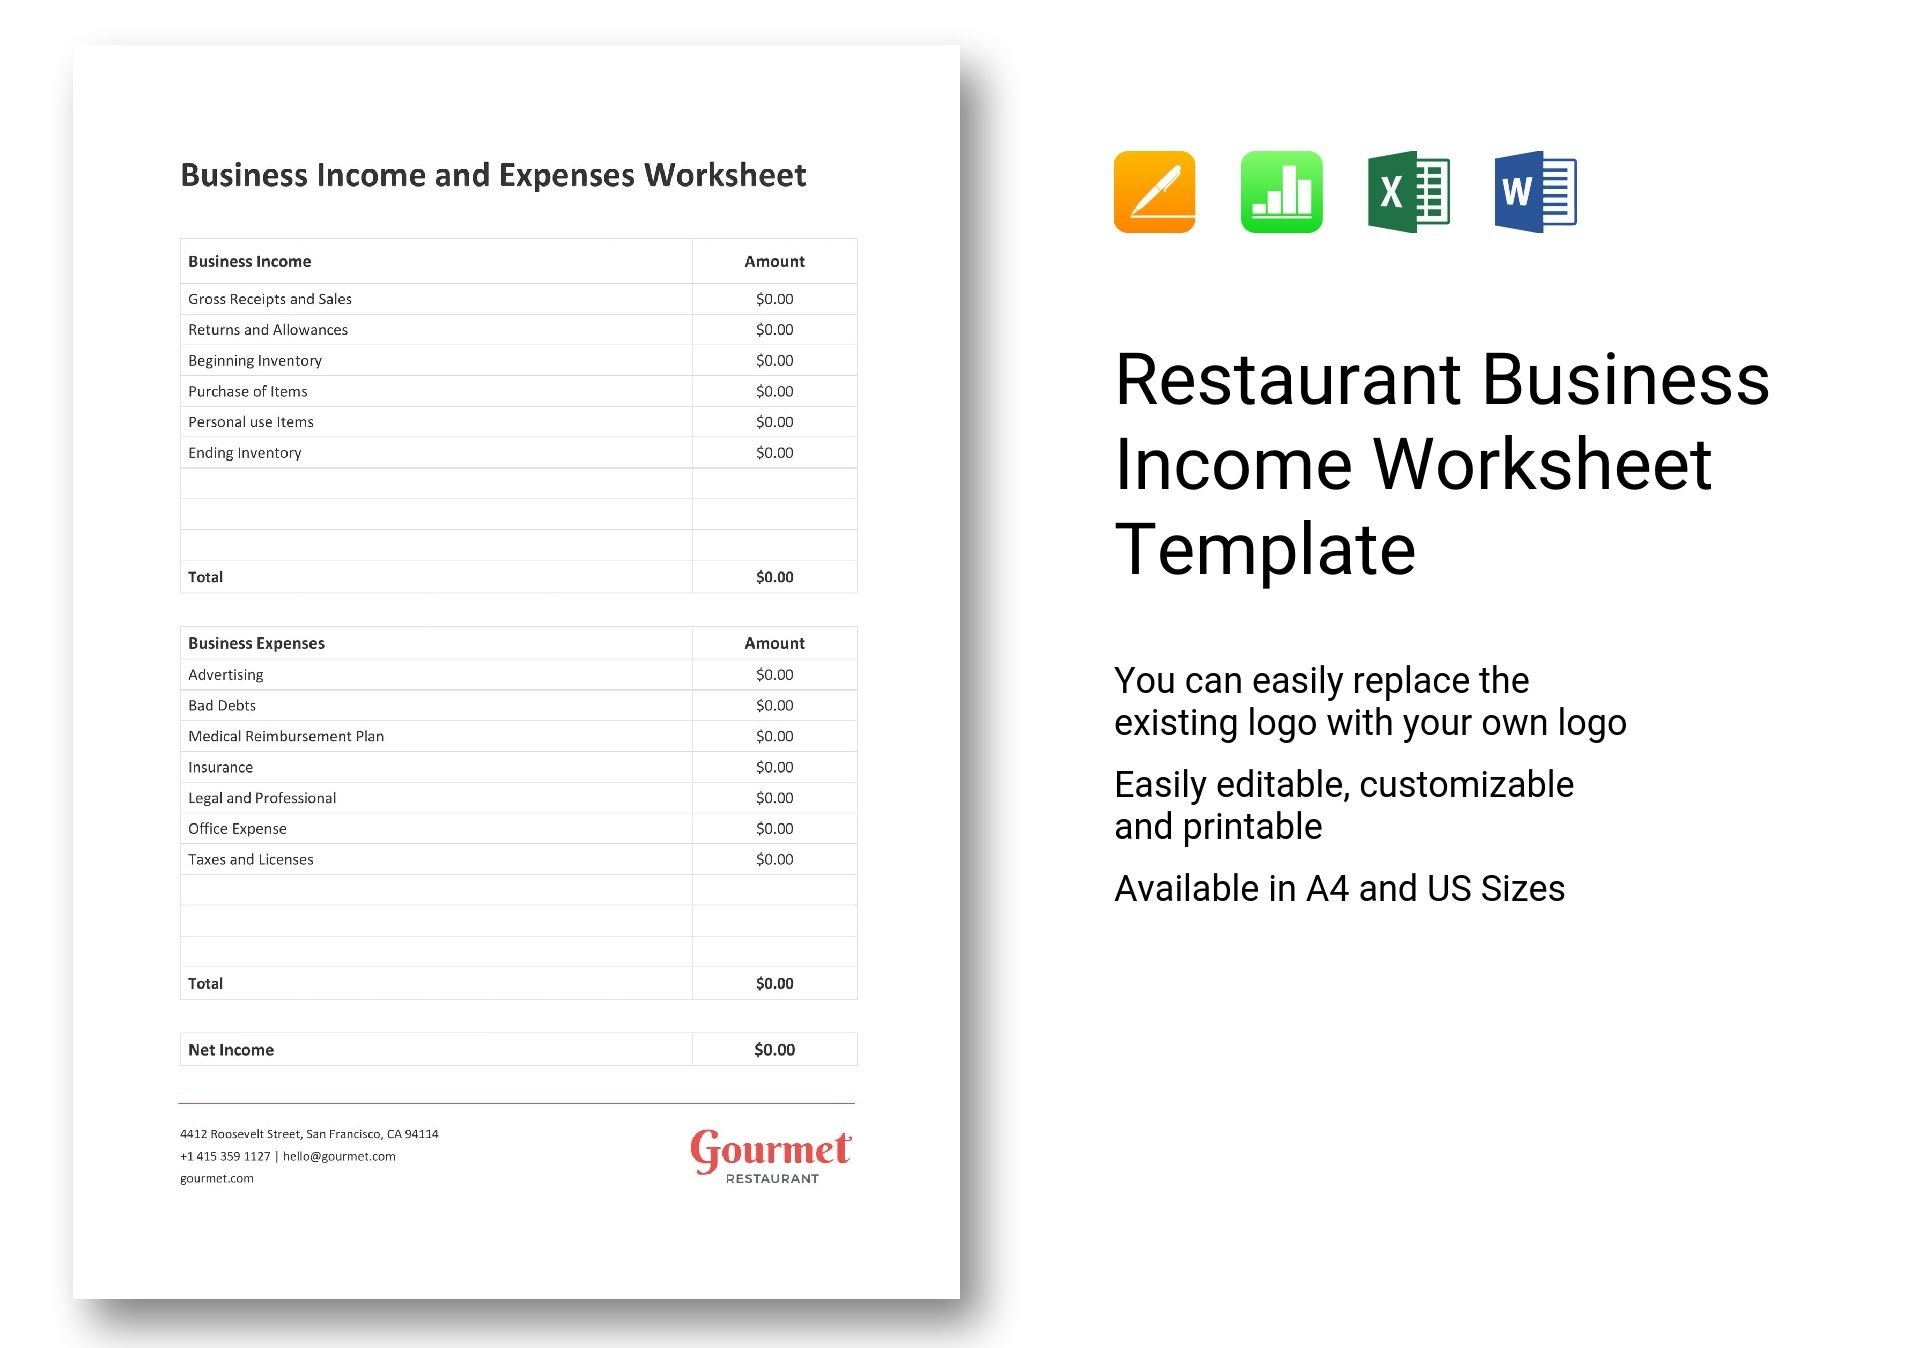 Restaurant Business Income Worksheet Template In Word Excel Apple Pages Numbers